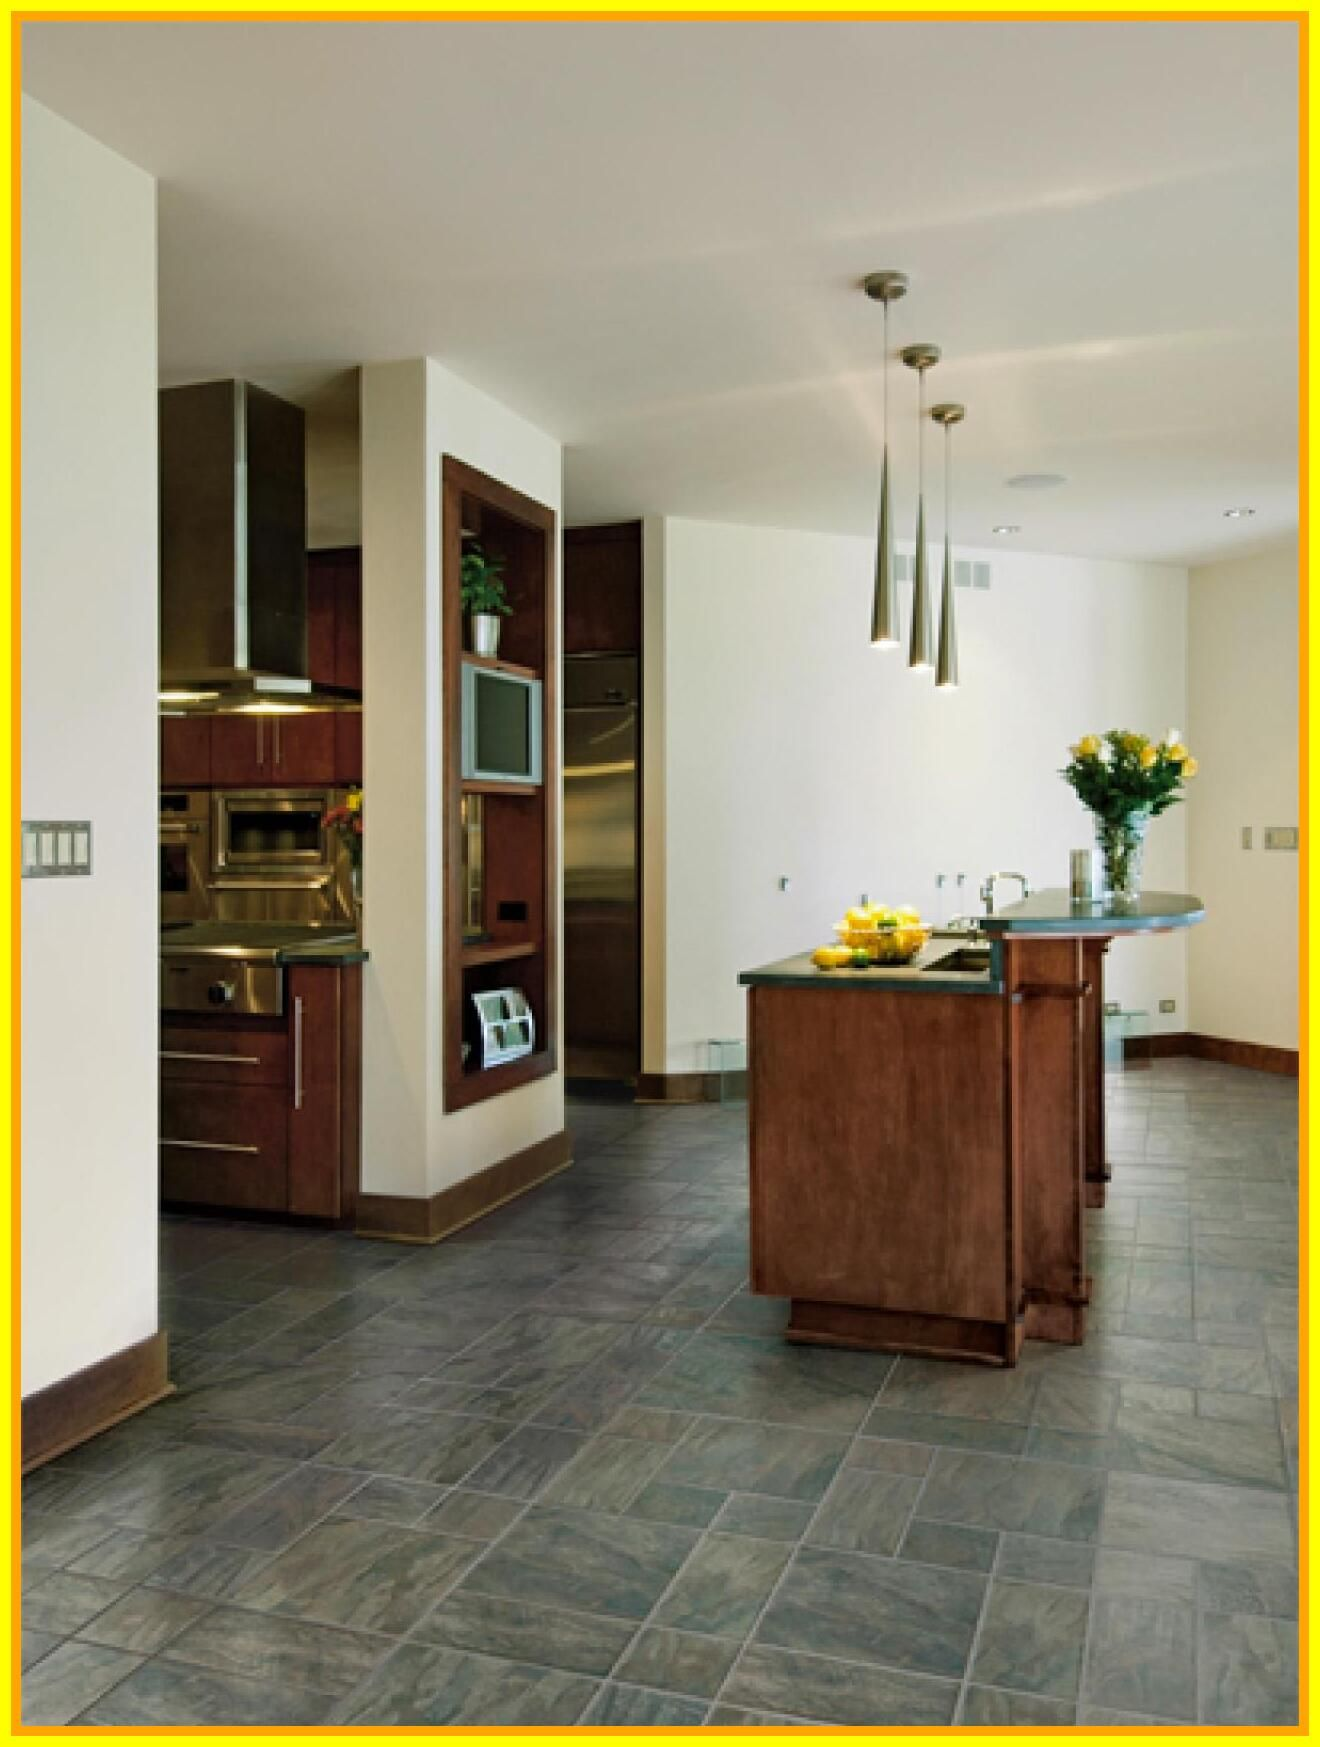 56 Reference Of Flooring Penny Master Bedroom In 2020 Flooring Options Basement Flooring Bedroom Flooring